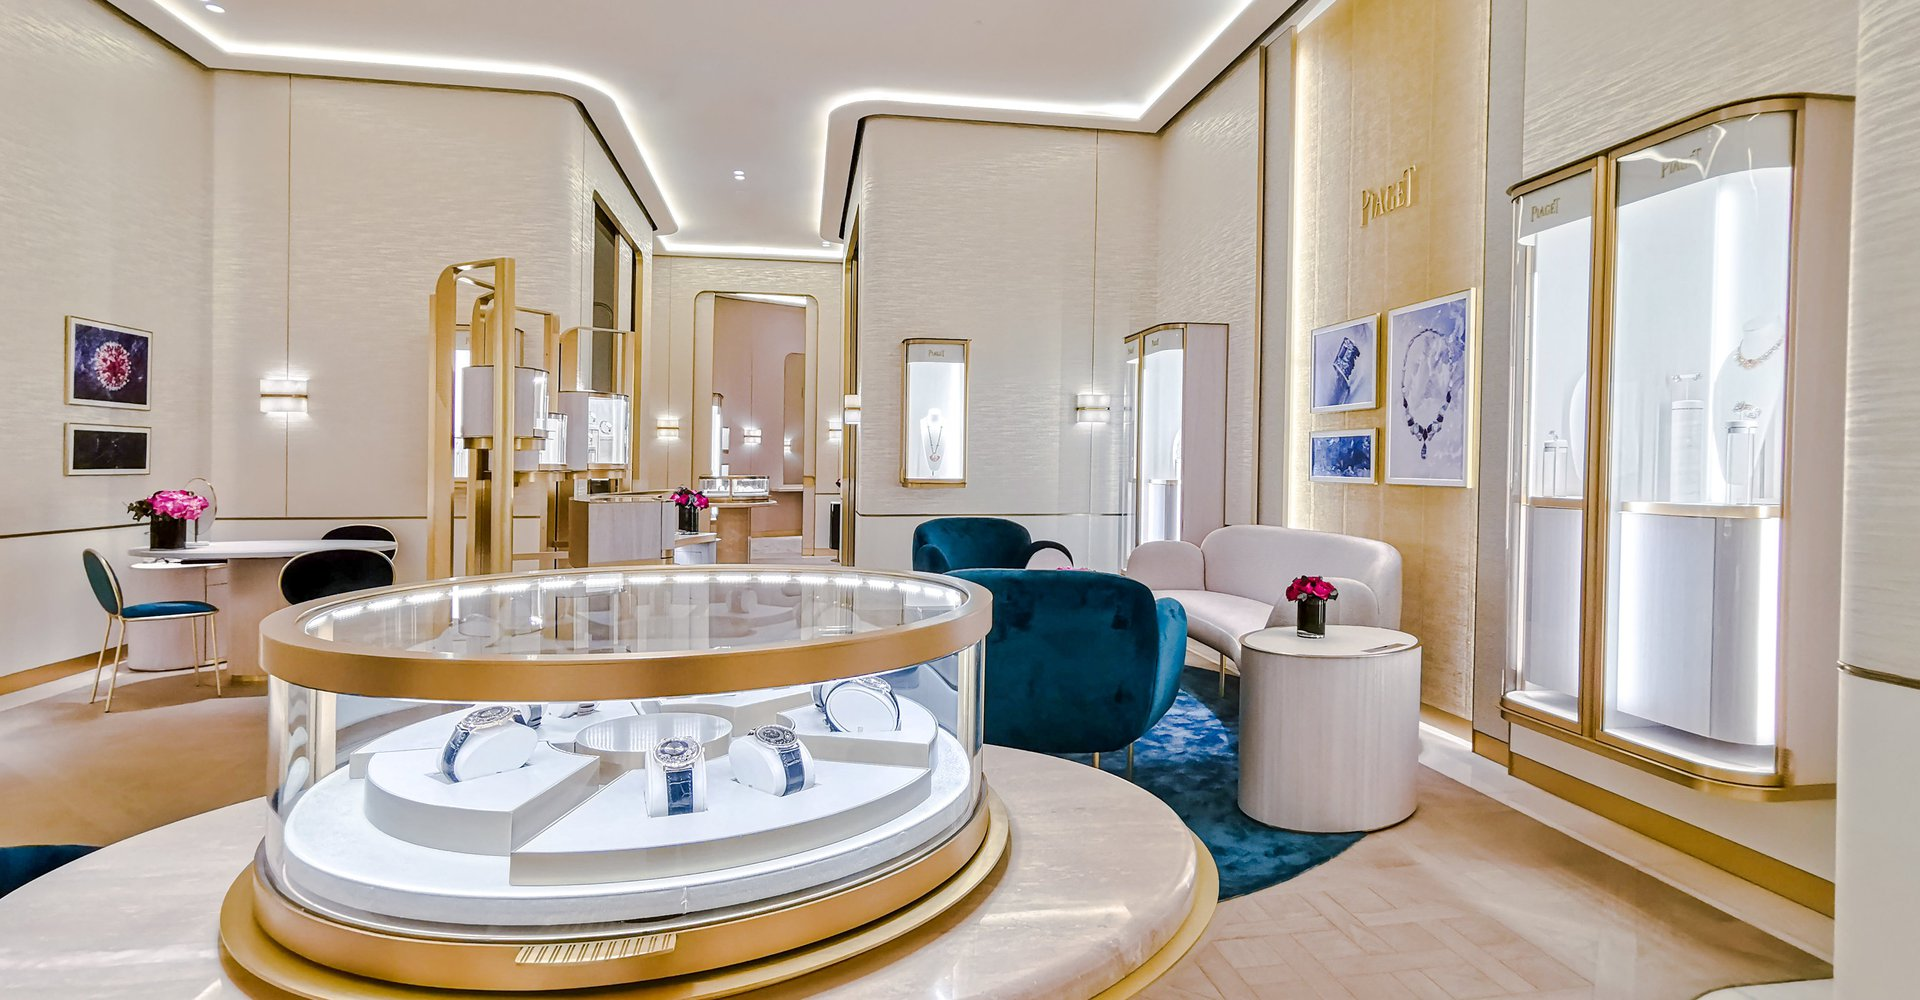 01 Piaget Store at The Galleria Al Maryah Island.jpg